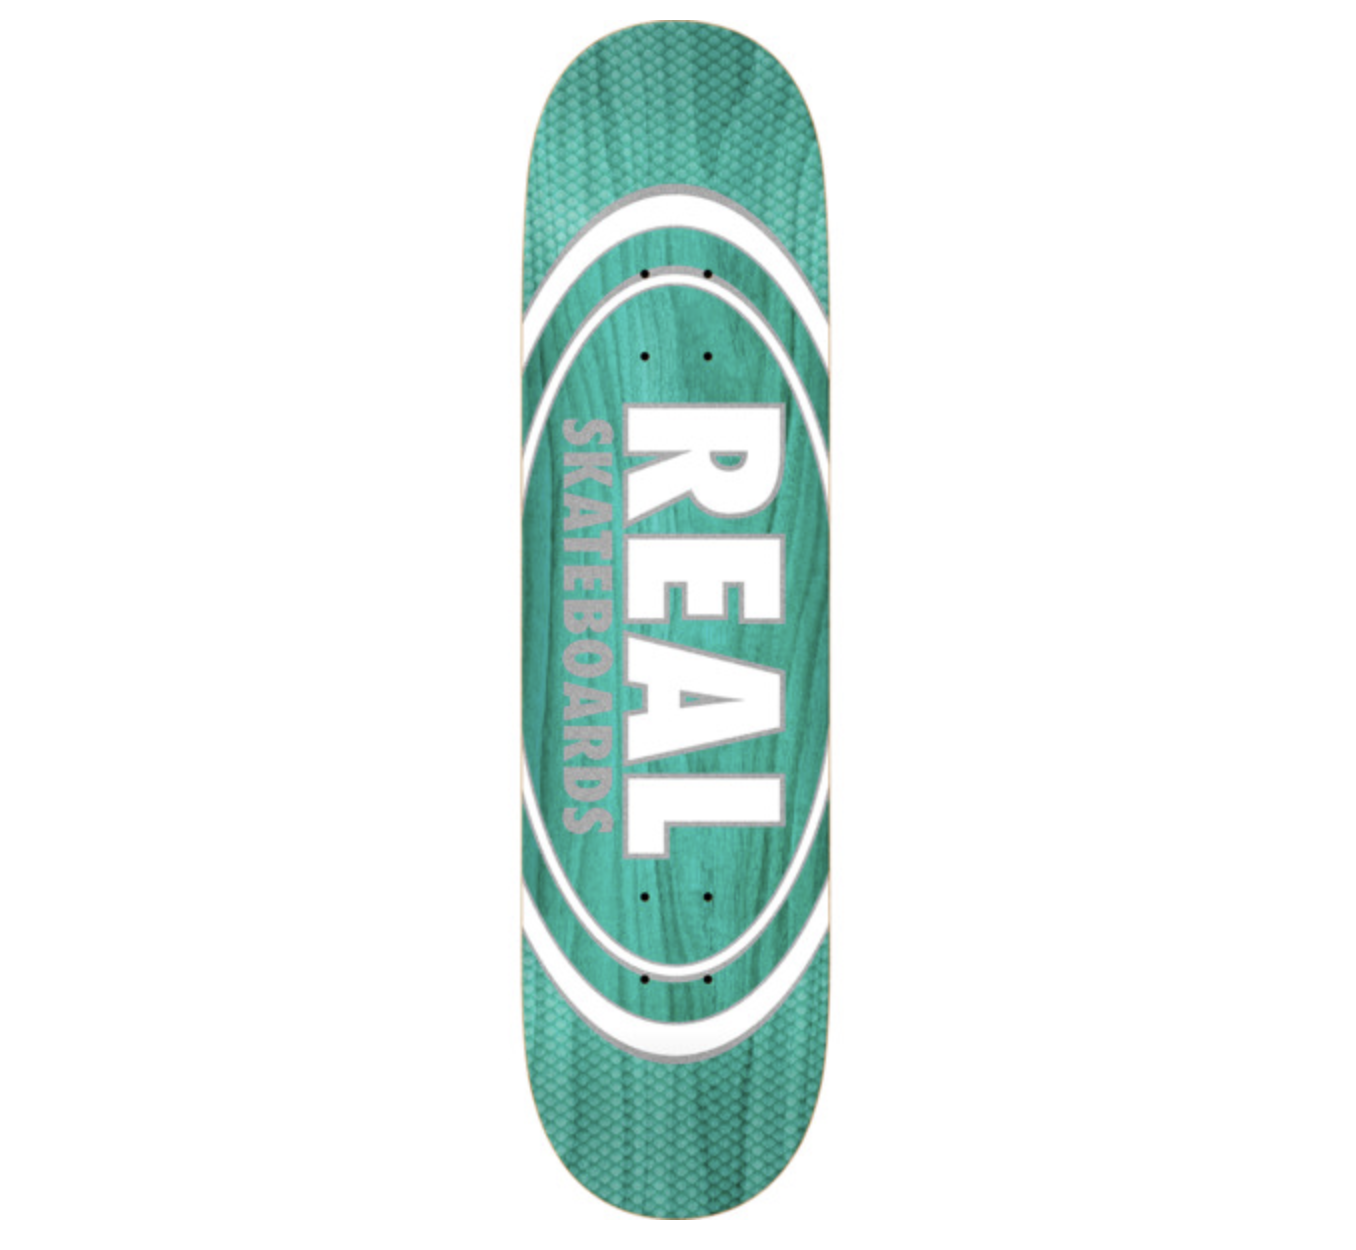 Real DECK-REAL OVAL PEARL PATTERNS (8.75)